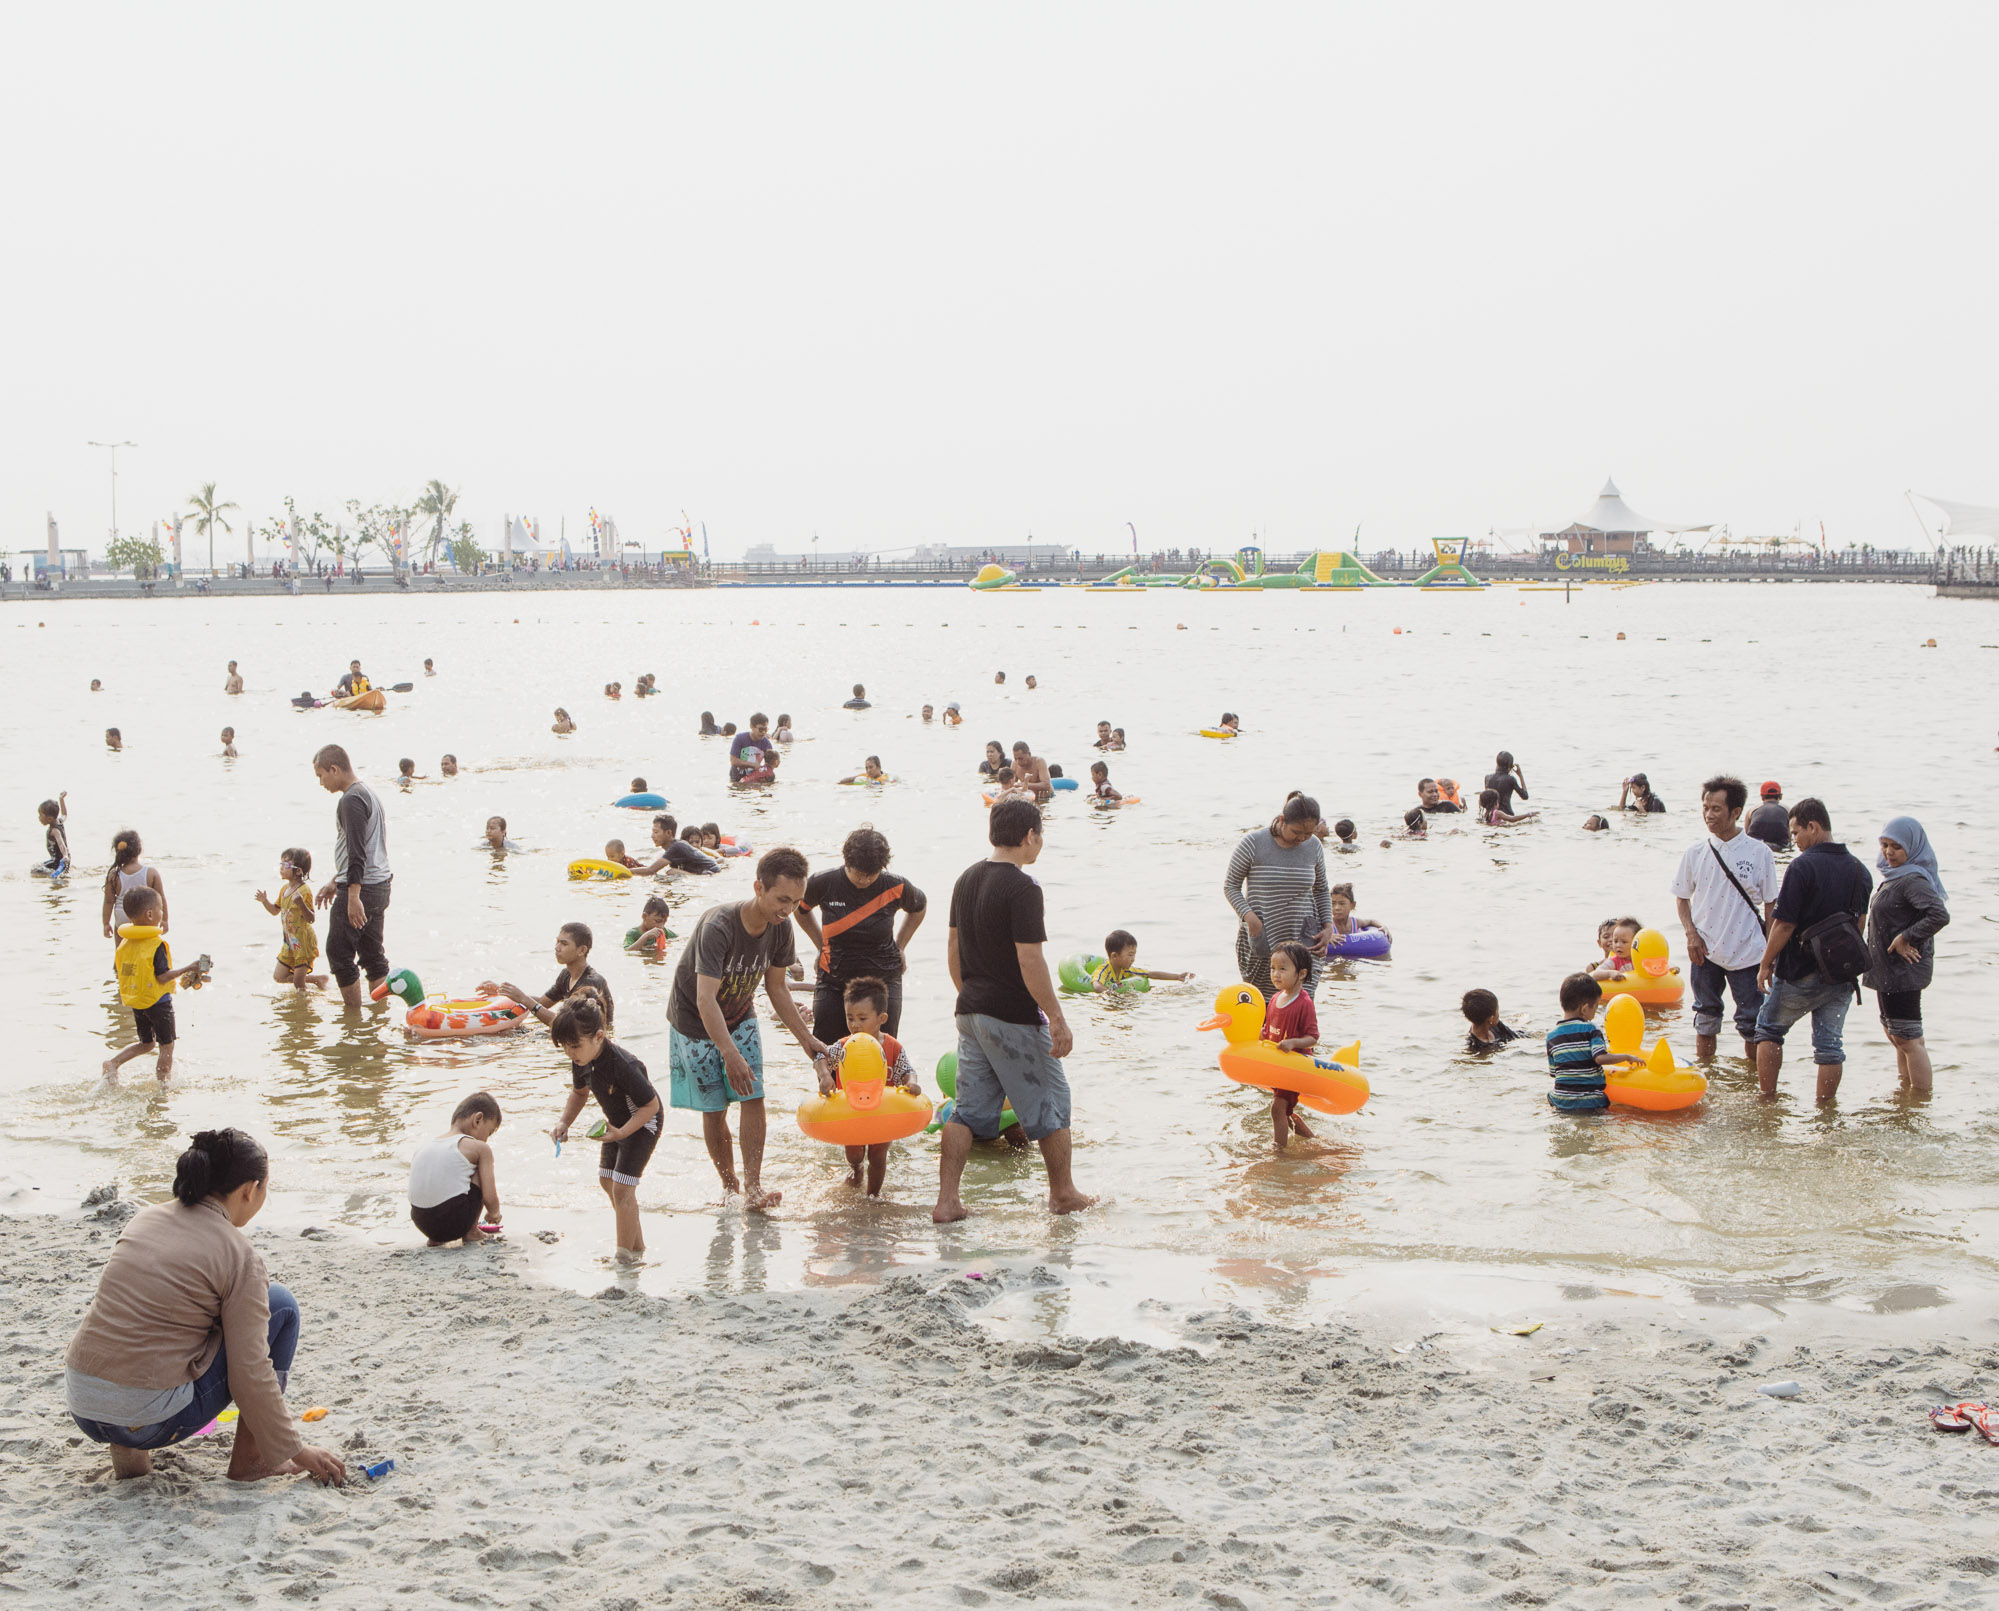 People spend their weekend at Ancol Beach in North Jakarta. Ancol is popular among Jakarta's middle class, as it offers amusement parks, resorts and the only remaining accessible beach in the city. However, the beach is very much artificial. (Photo by Muhammad Fadli/GroundTruth)